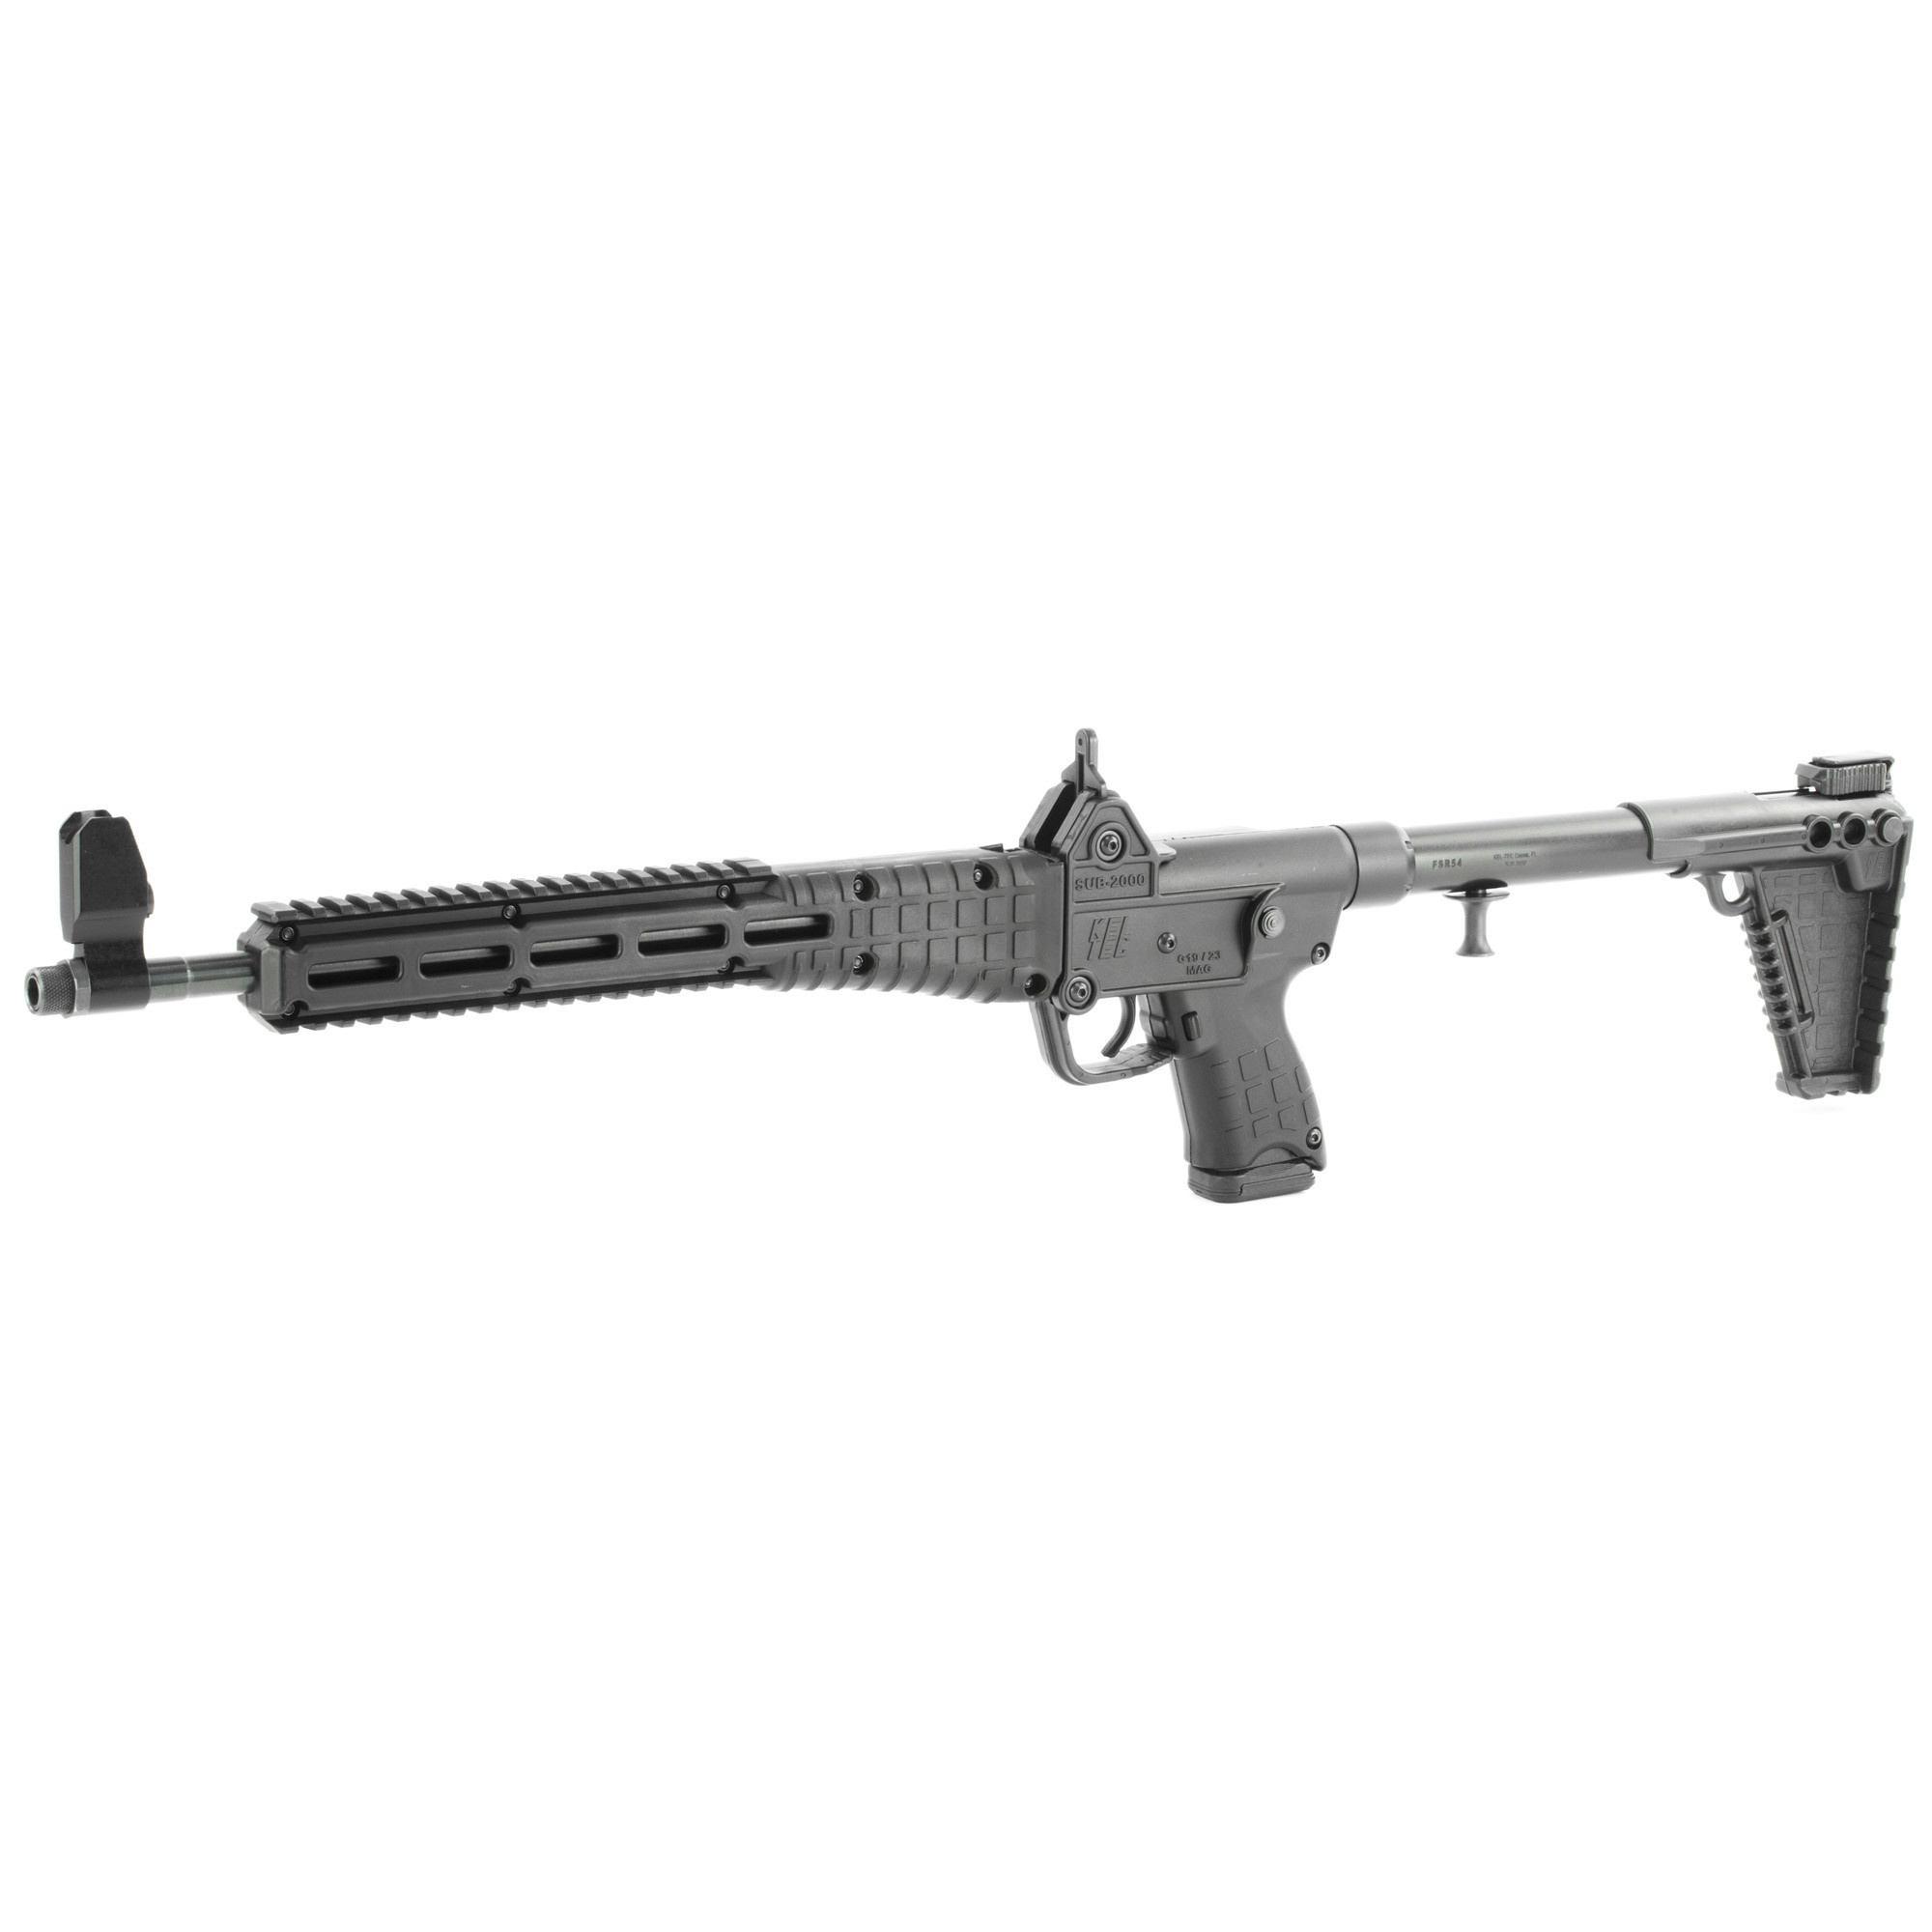 Kel-Tec KEL-TEC SUB-2000 9MM 17RD BLK FOR GLK19